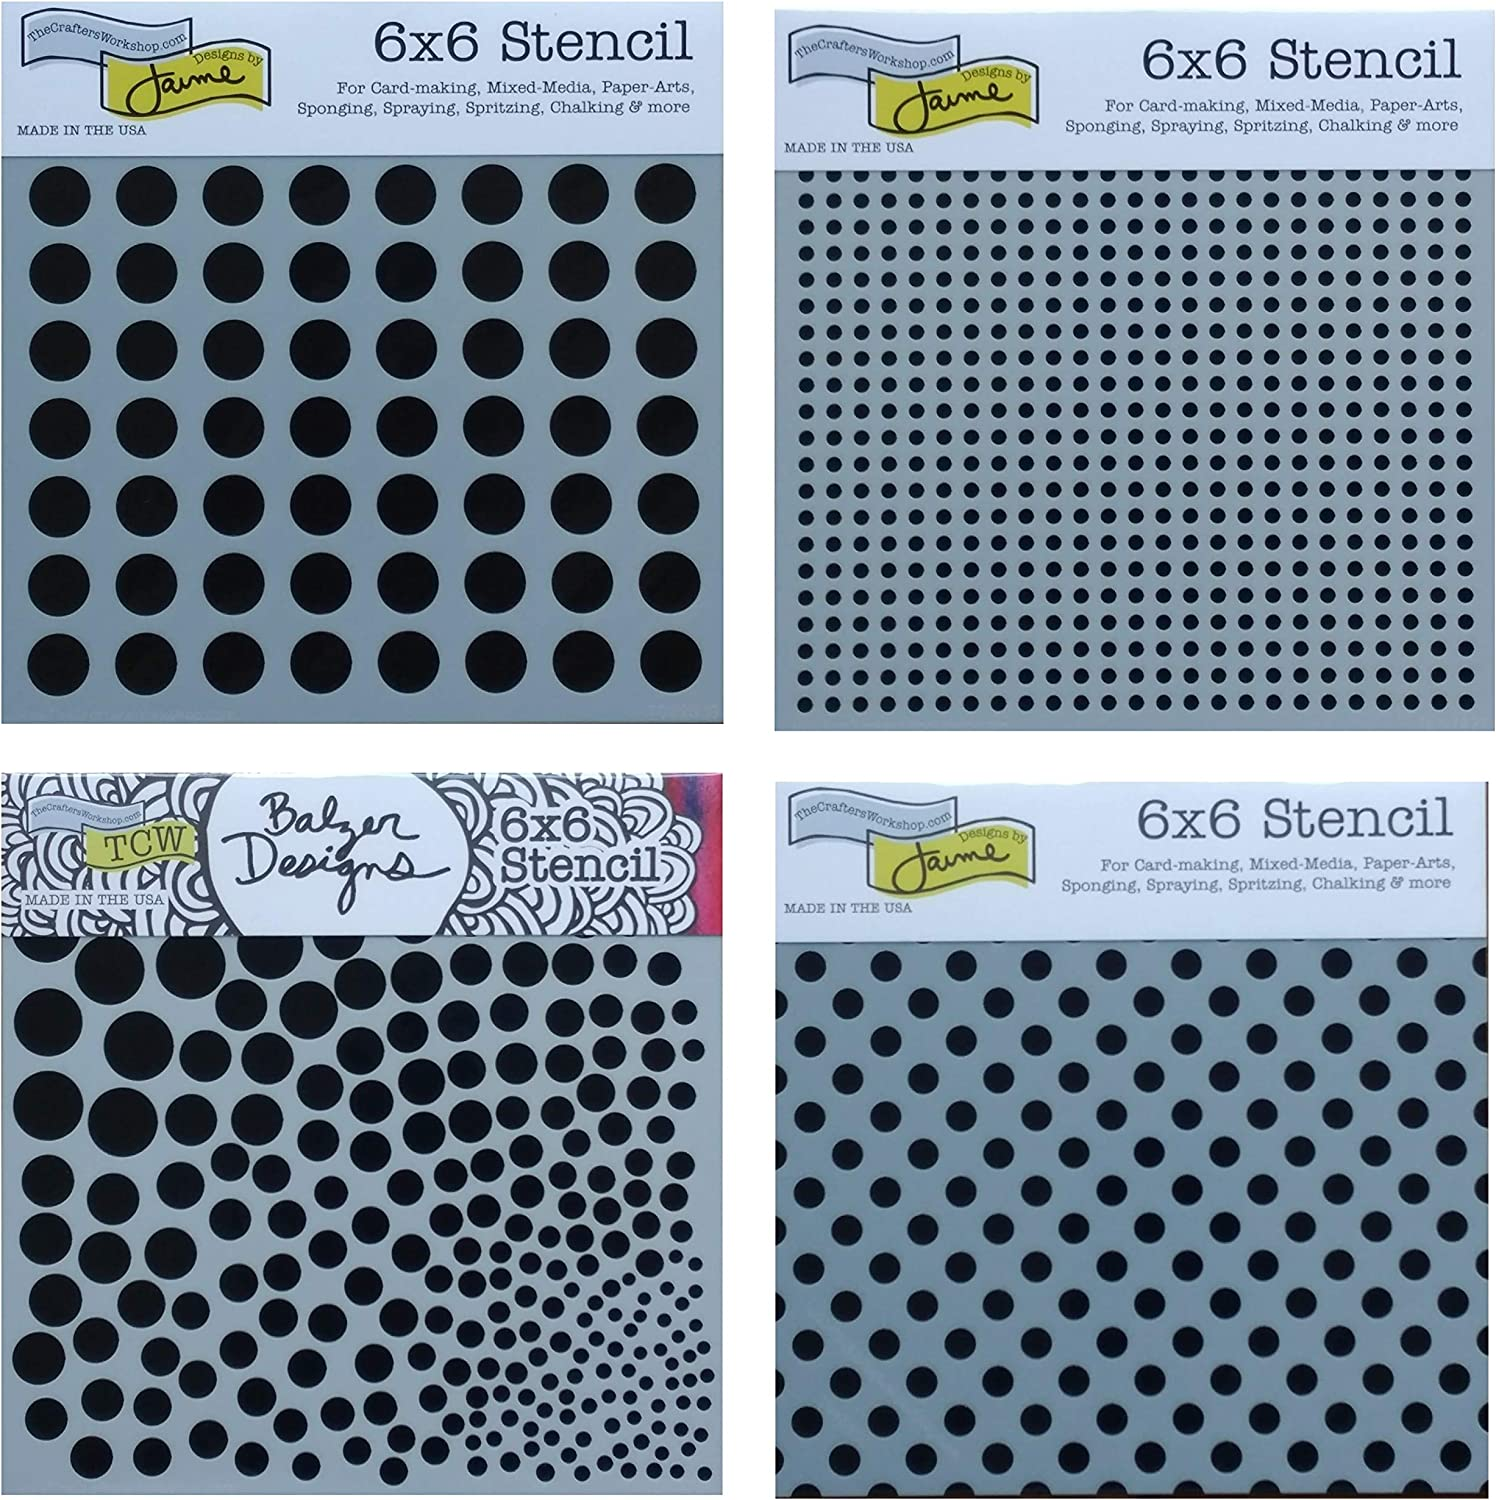 4 Crafters Workshop Mixed Media Stencils Set | Dots, Bubble, Polka Dot, Grid Stencil